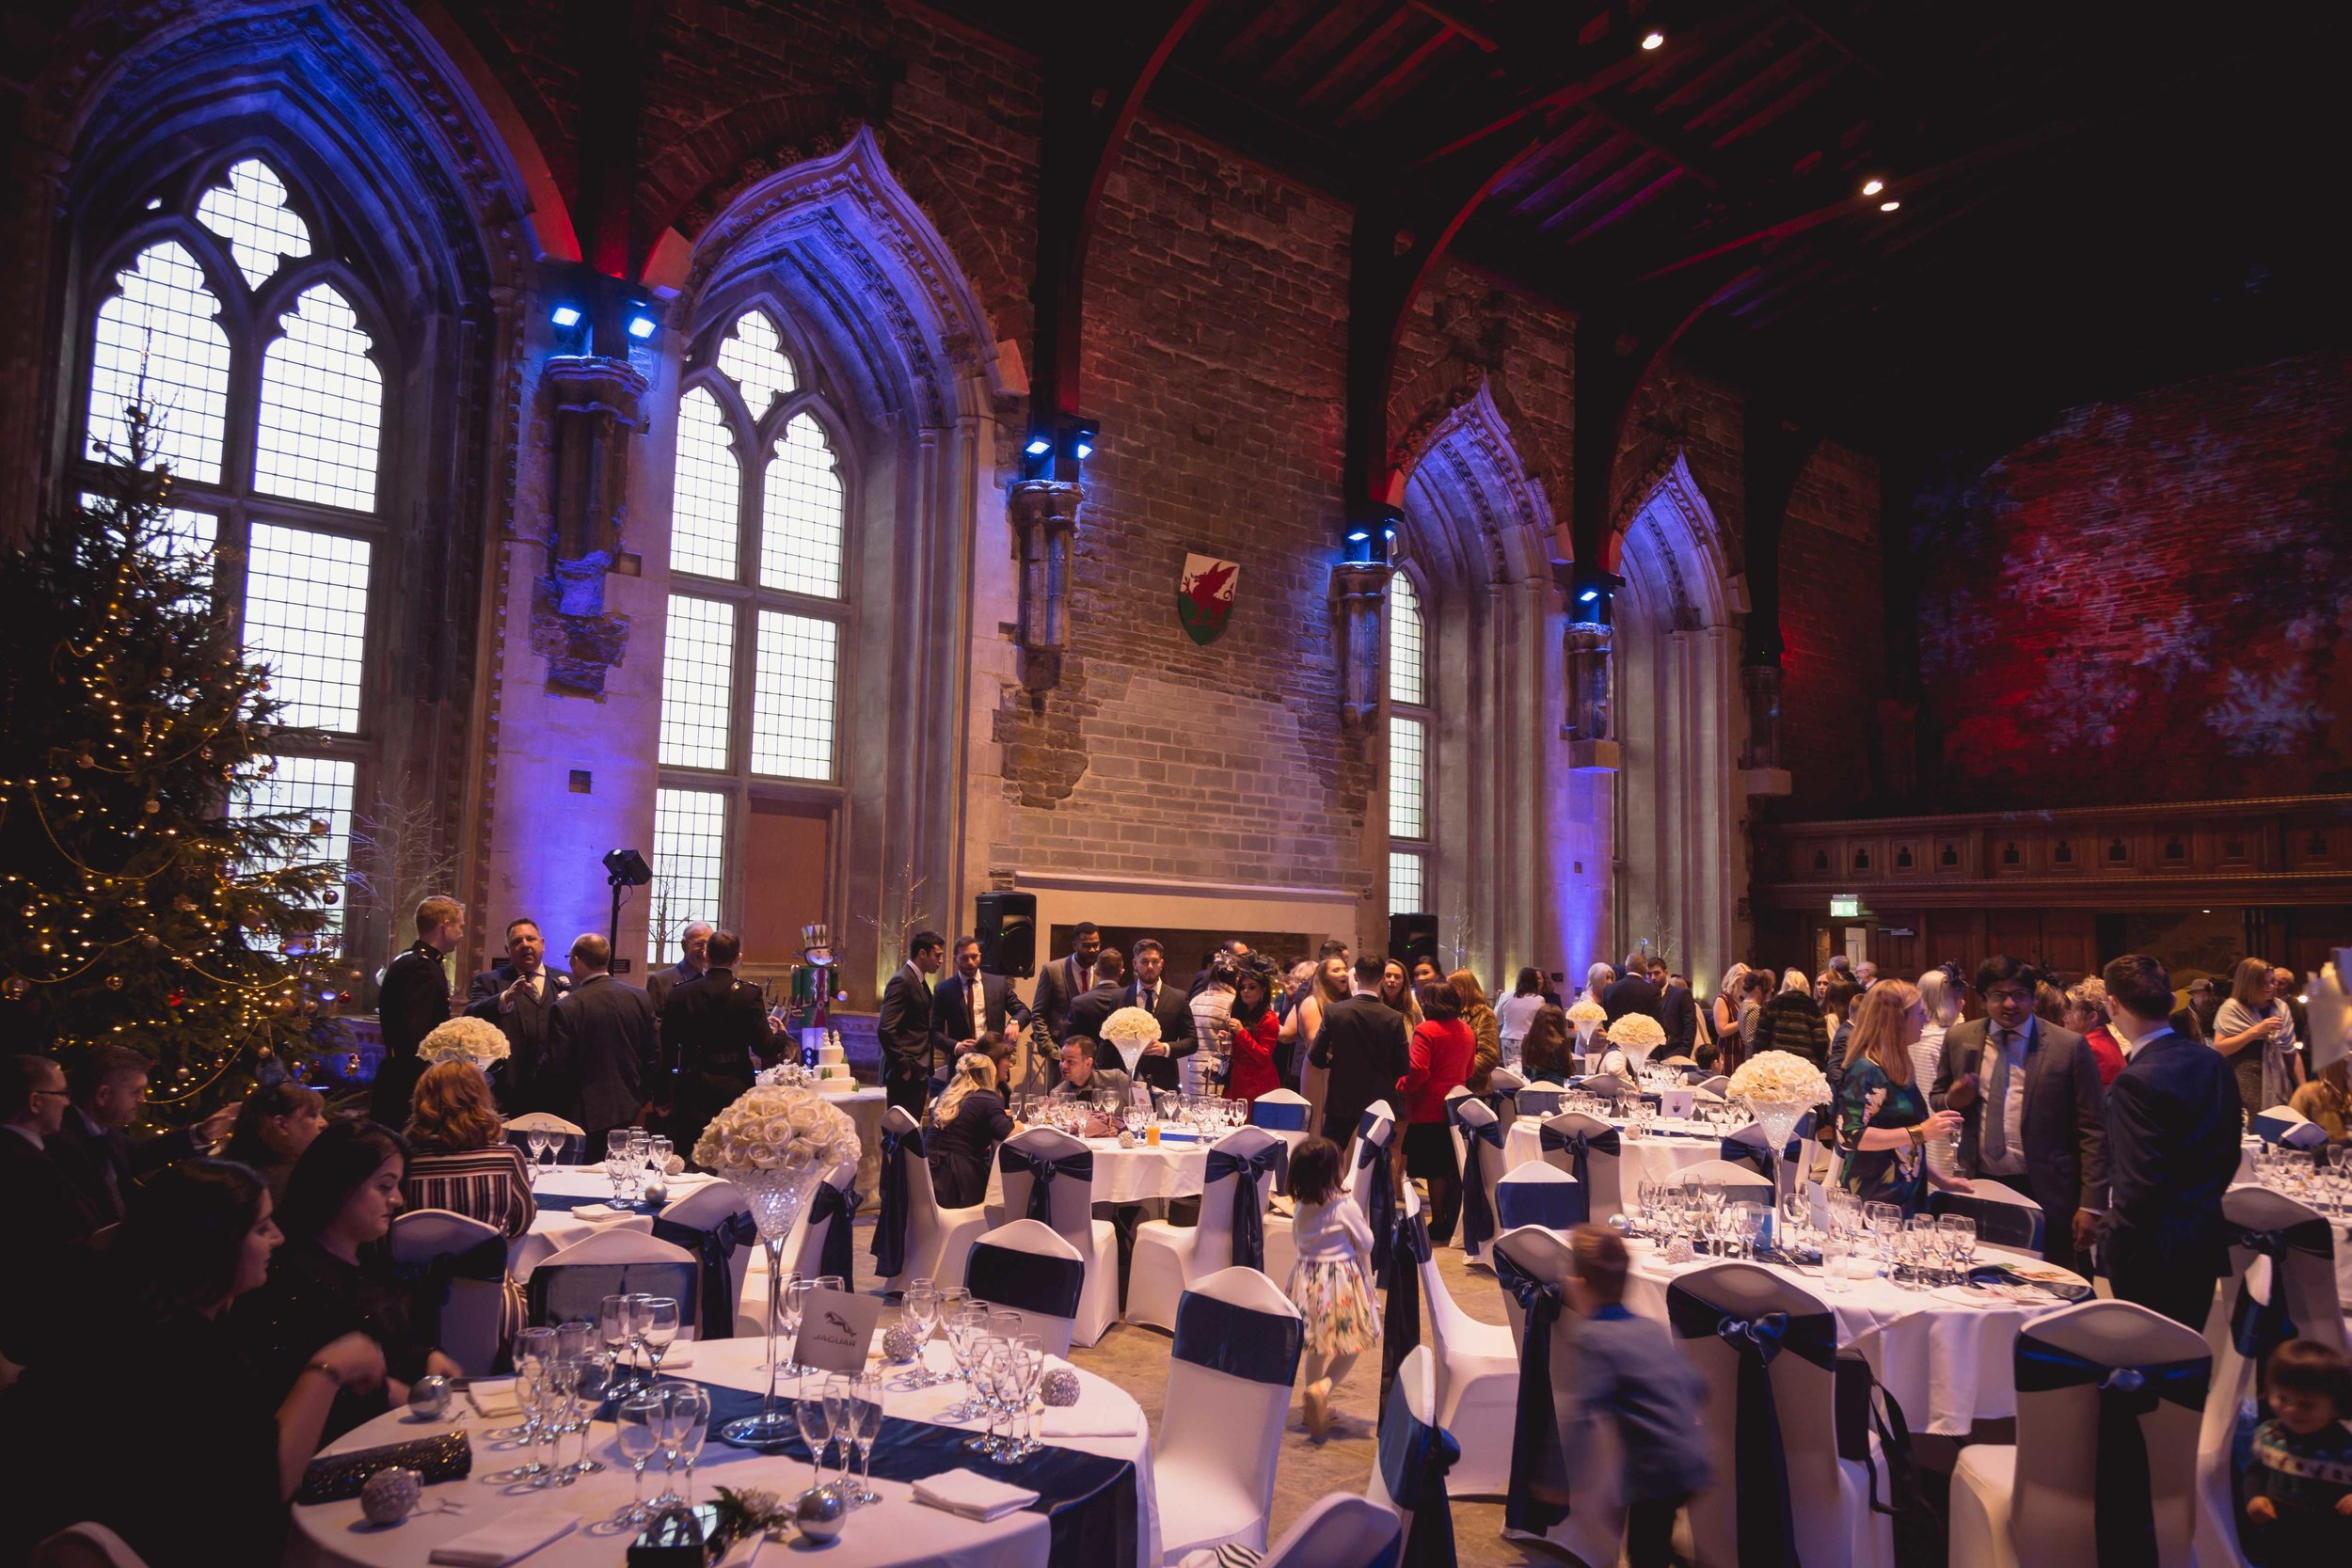 Image of the wedding venue, The Great Hall, Caerphilly Castle